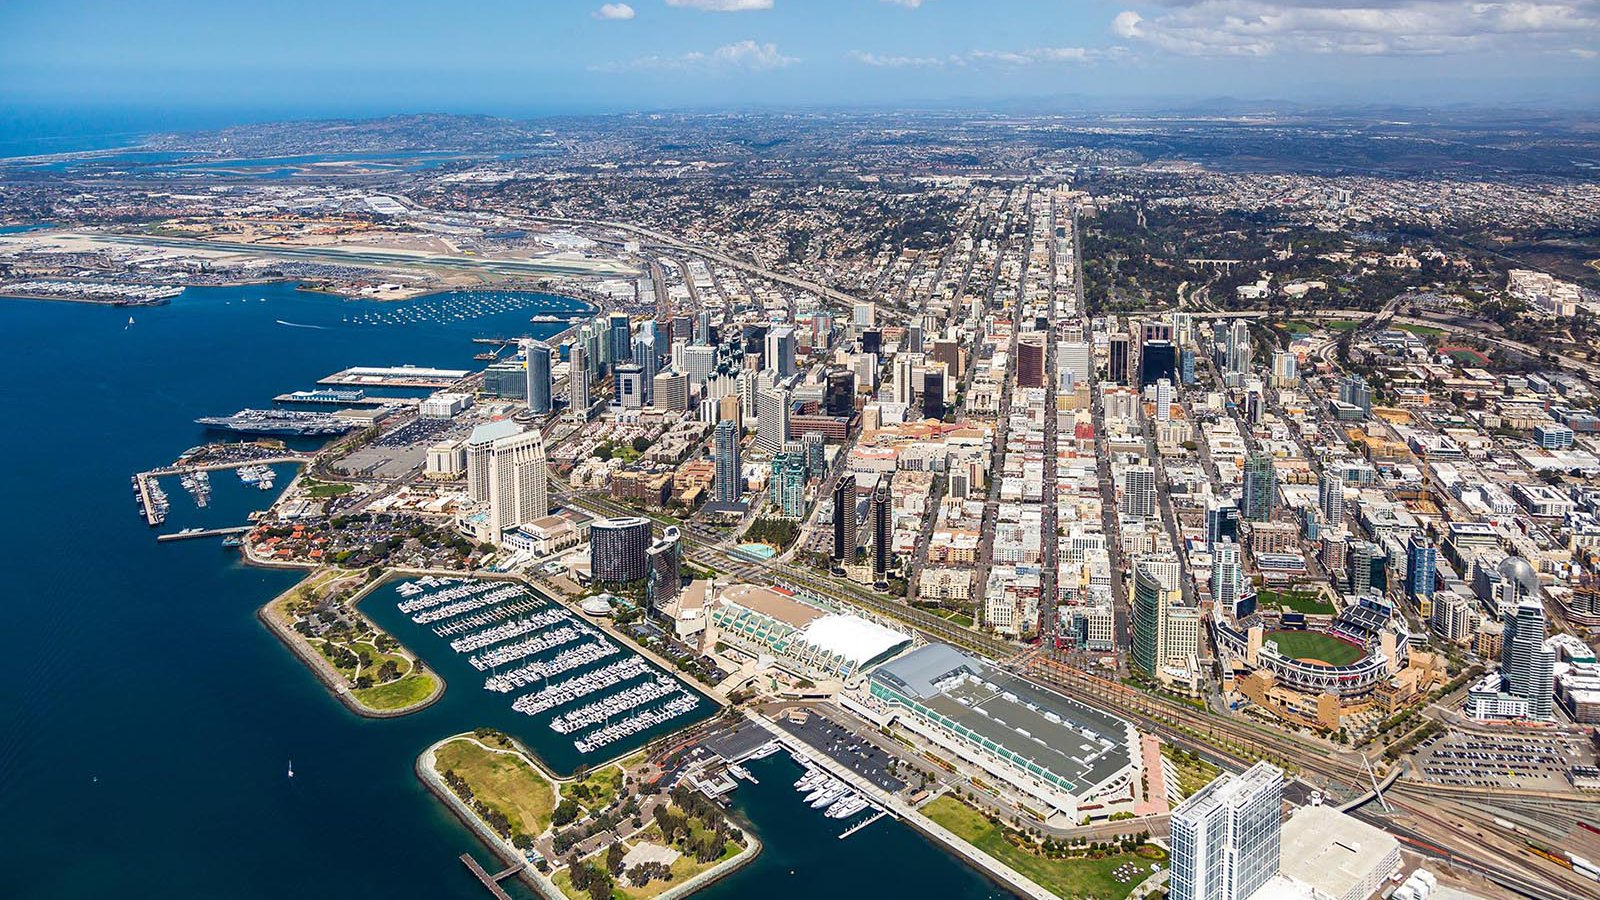 Aerial cityscape of the Downtown San Diego Skyline with the San Diego Convention Center and Petco Park in the foreground